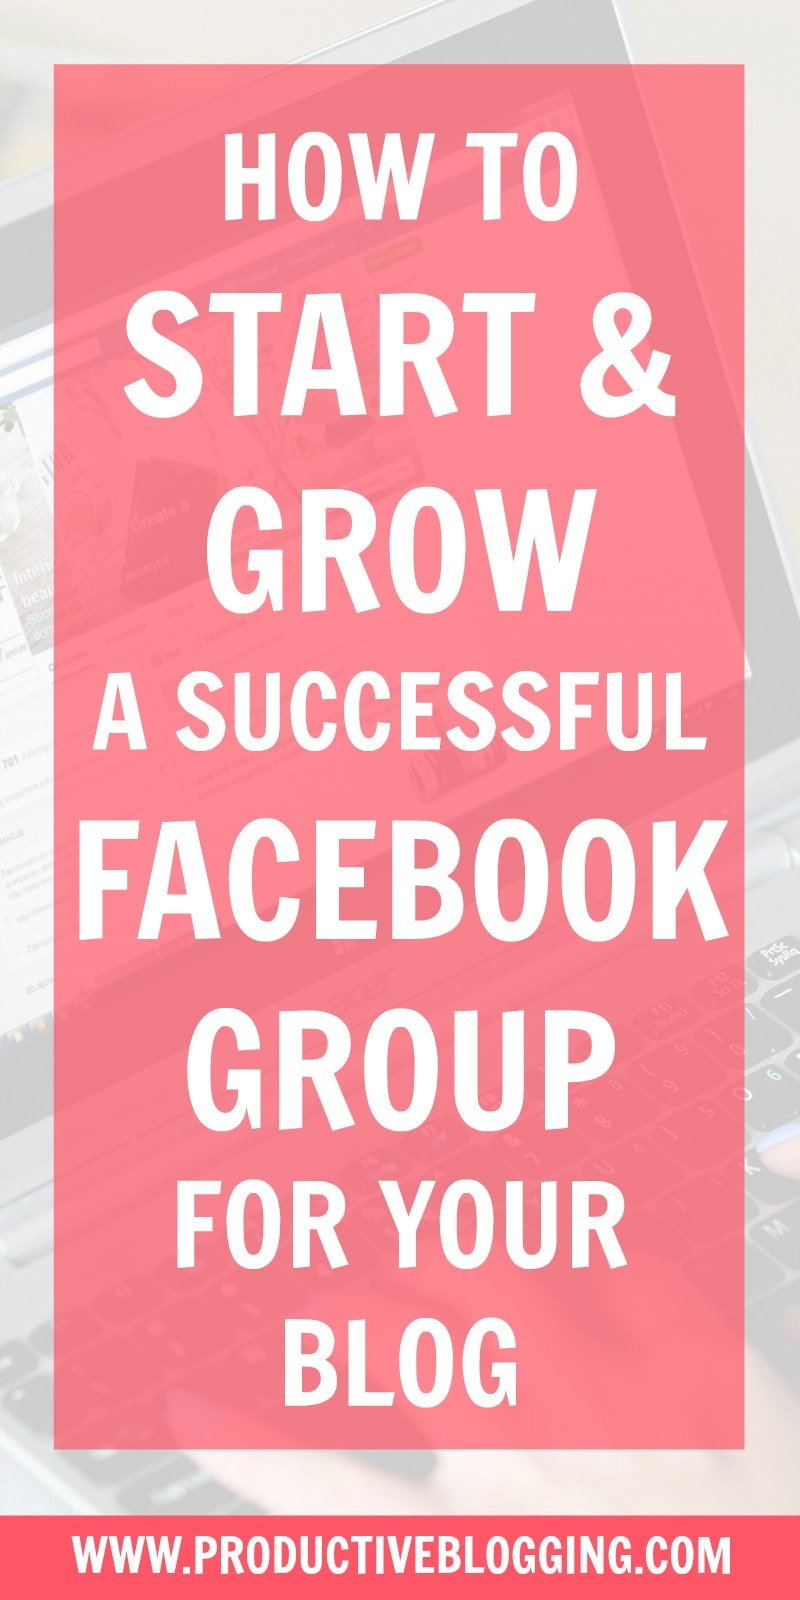 1.4 billion people participate in Facebook Groups every month. Here's how to harness the power of Facebook groups to grow your blog traffic and income. (Spoiler alert, it's not by spamming your group with 'read my blog post' and 'buy my products' messages!) #facebookgroup #facebookgroups #successfulfacebookgroup #facebookgrouptips #facebookcommunity #facebooktribe #growyourtribe #growyourblog #bloggrowth #bloggrowthhacks #bloggingtips #blogginghacks #blogging #bloggers #productiveblogging